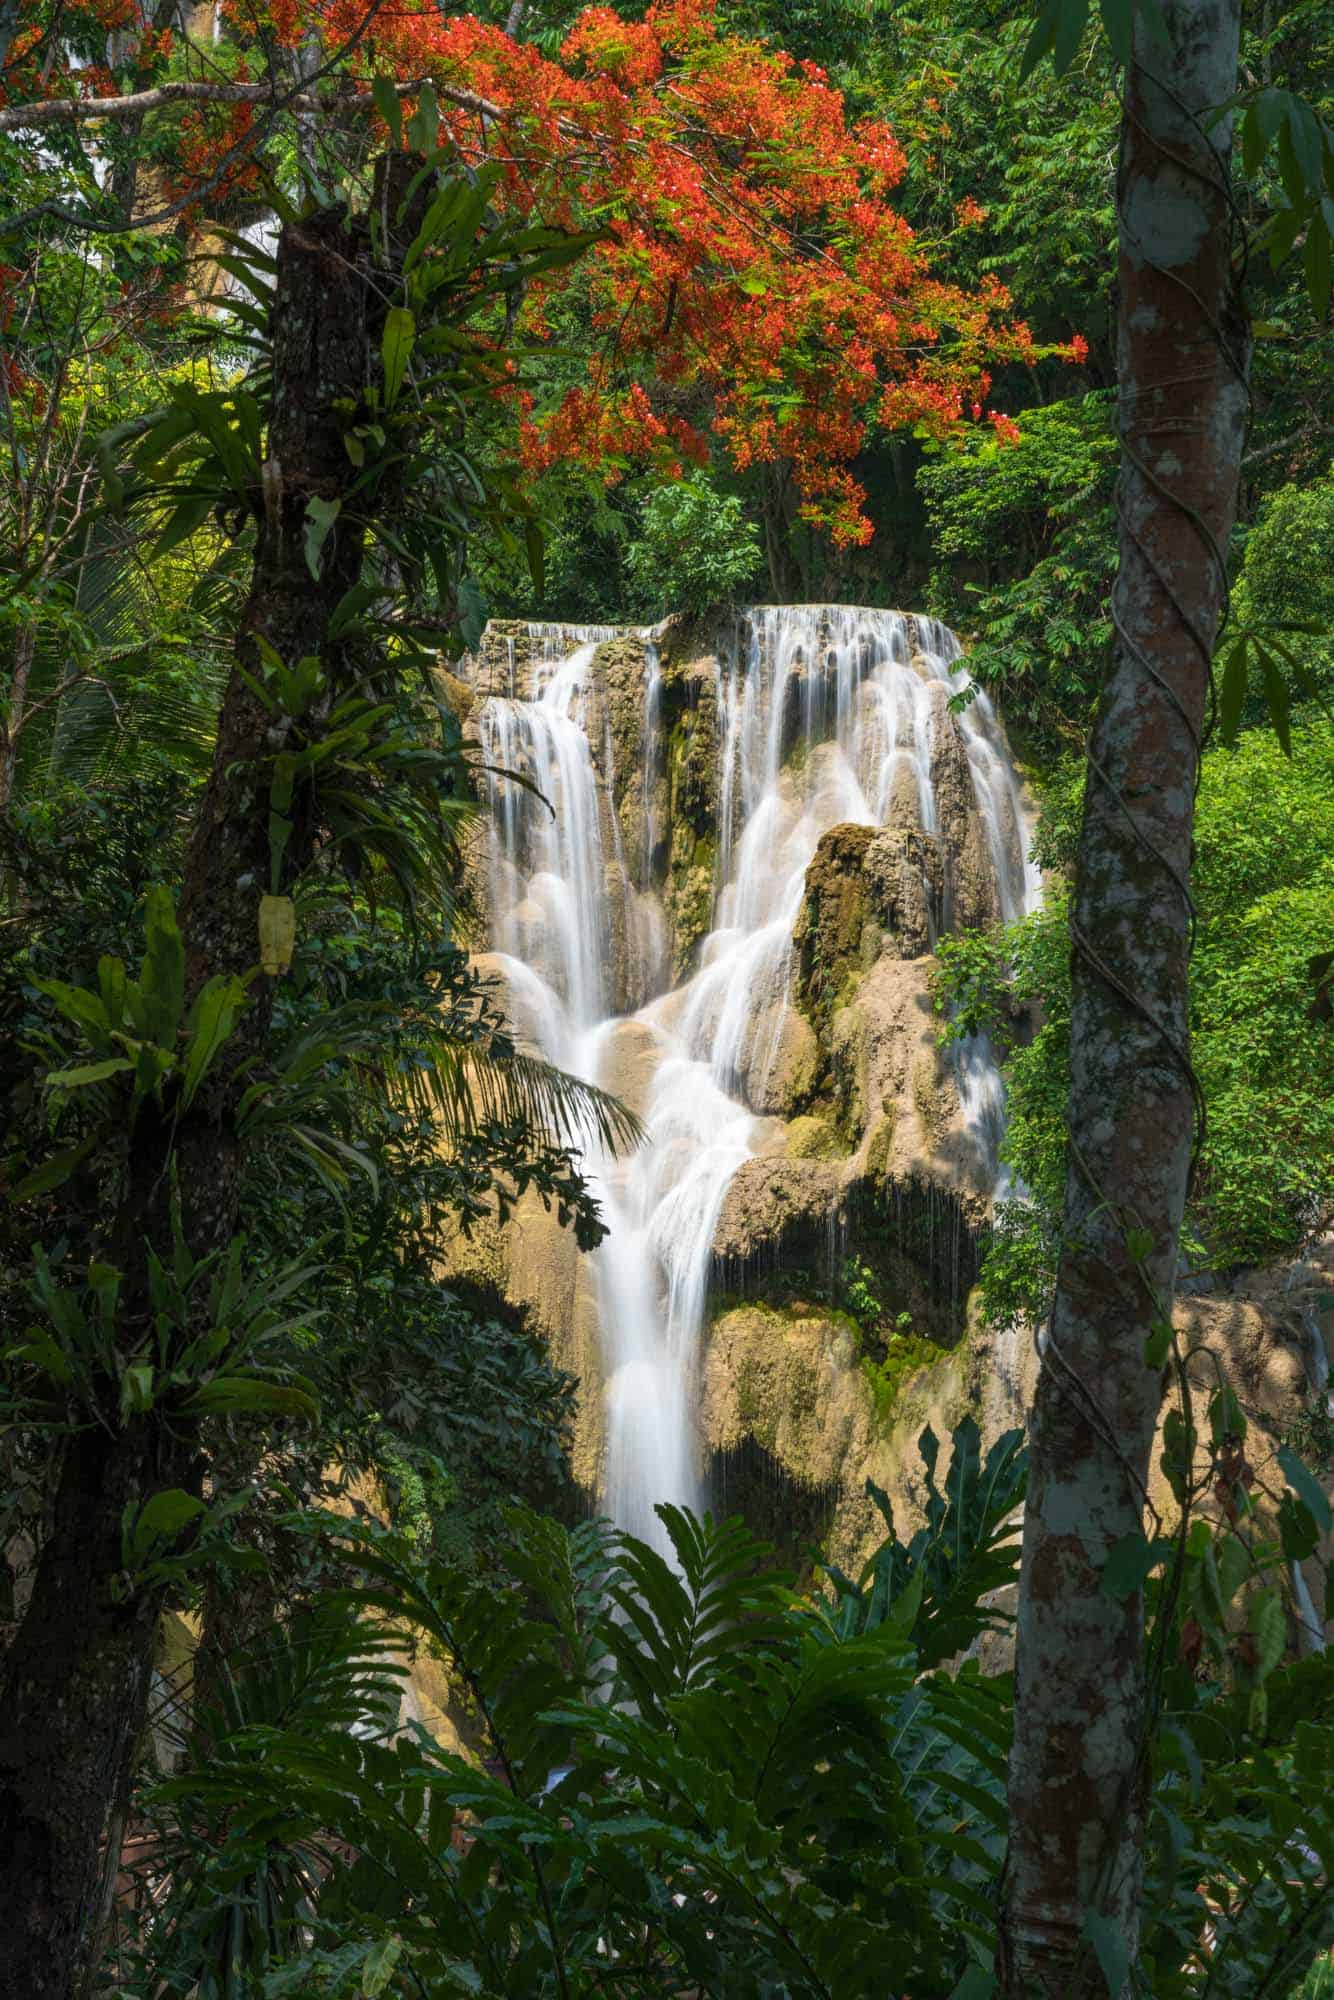 Kuang Si Falls framed by bright red blossoms and green foliage